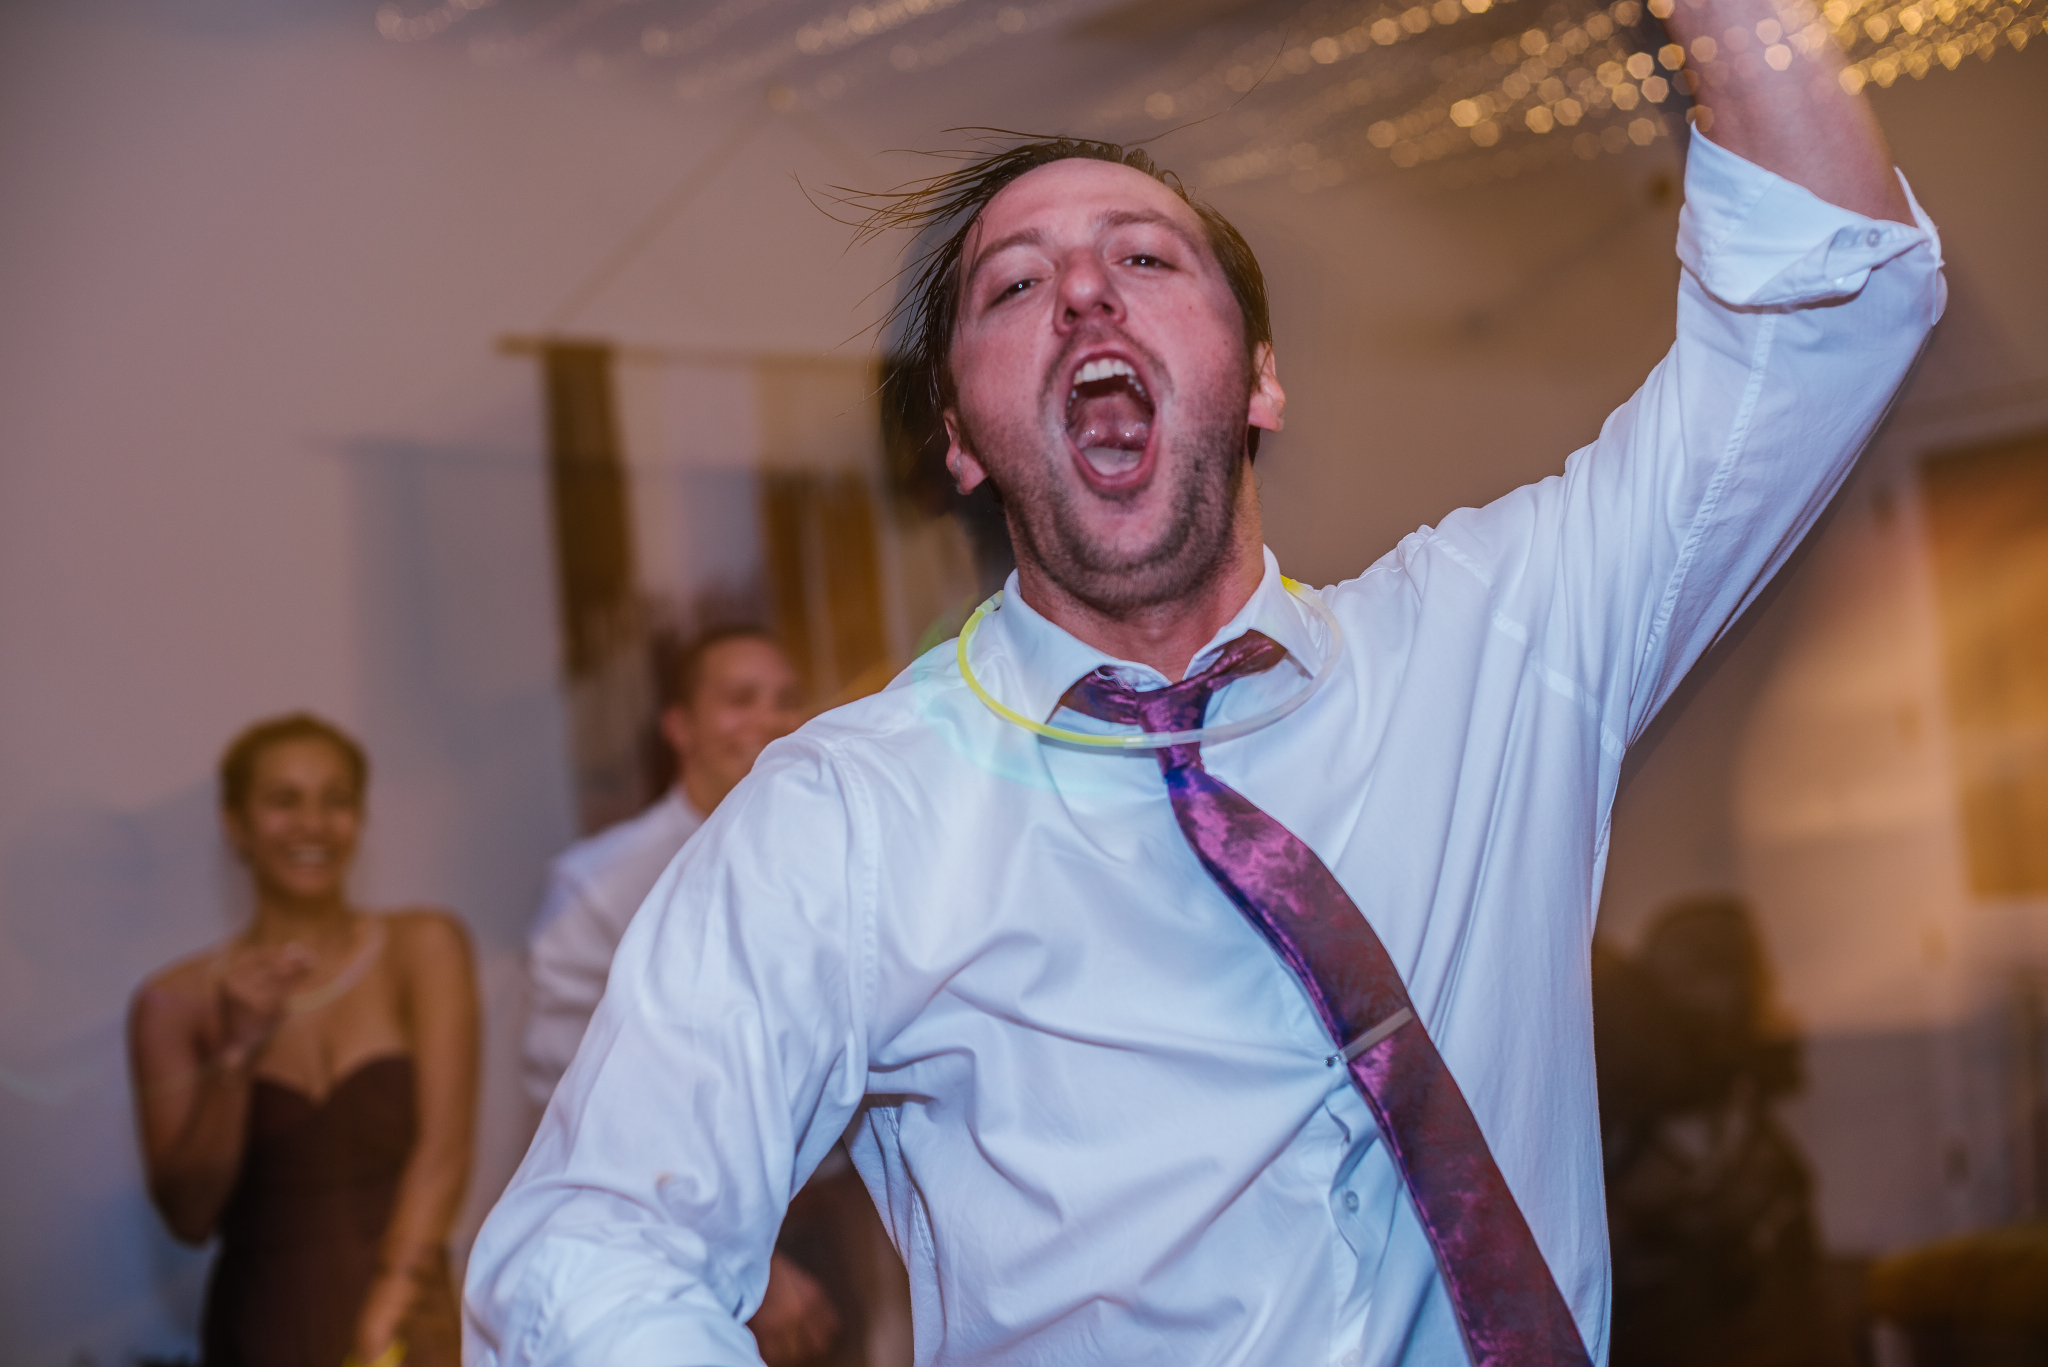 san diego wedding   photographer | blurred shot of man dancing with glowsticks